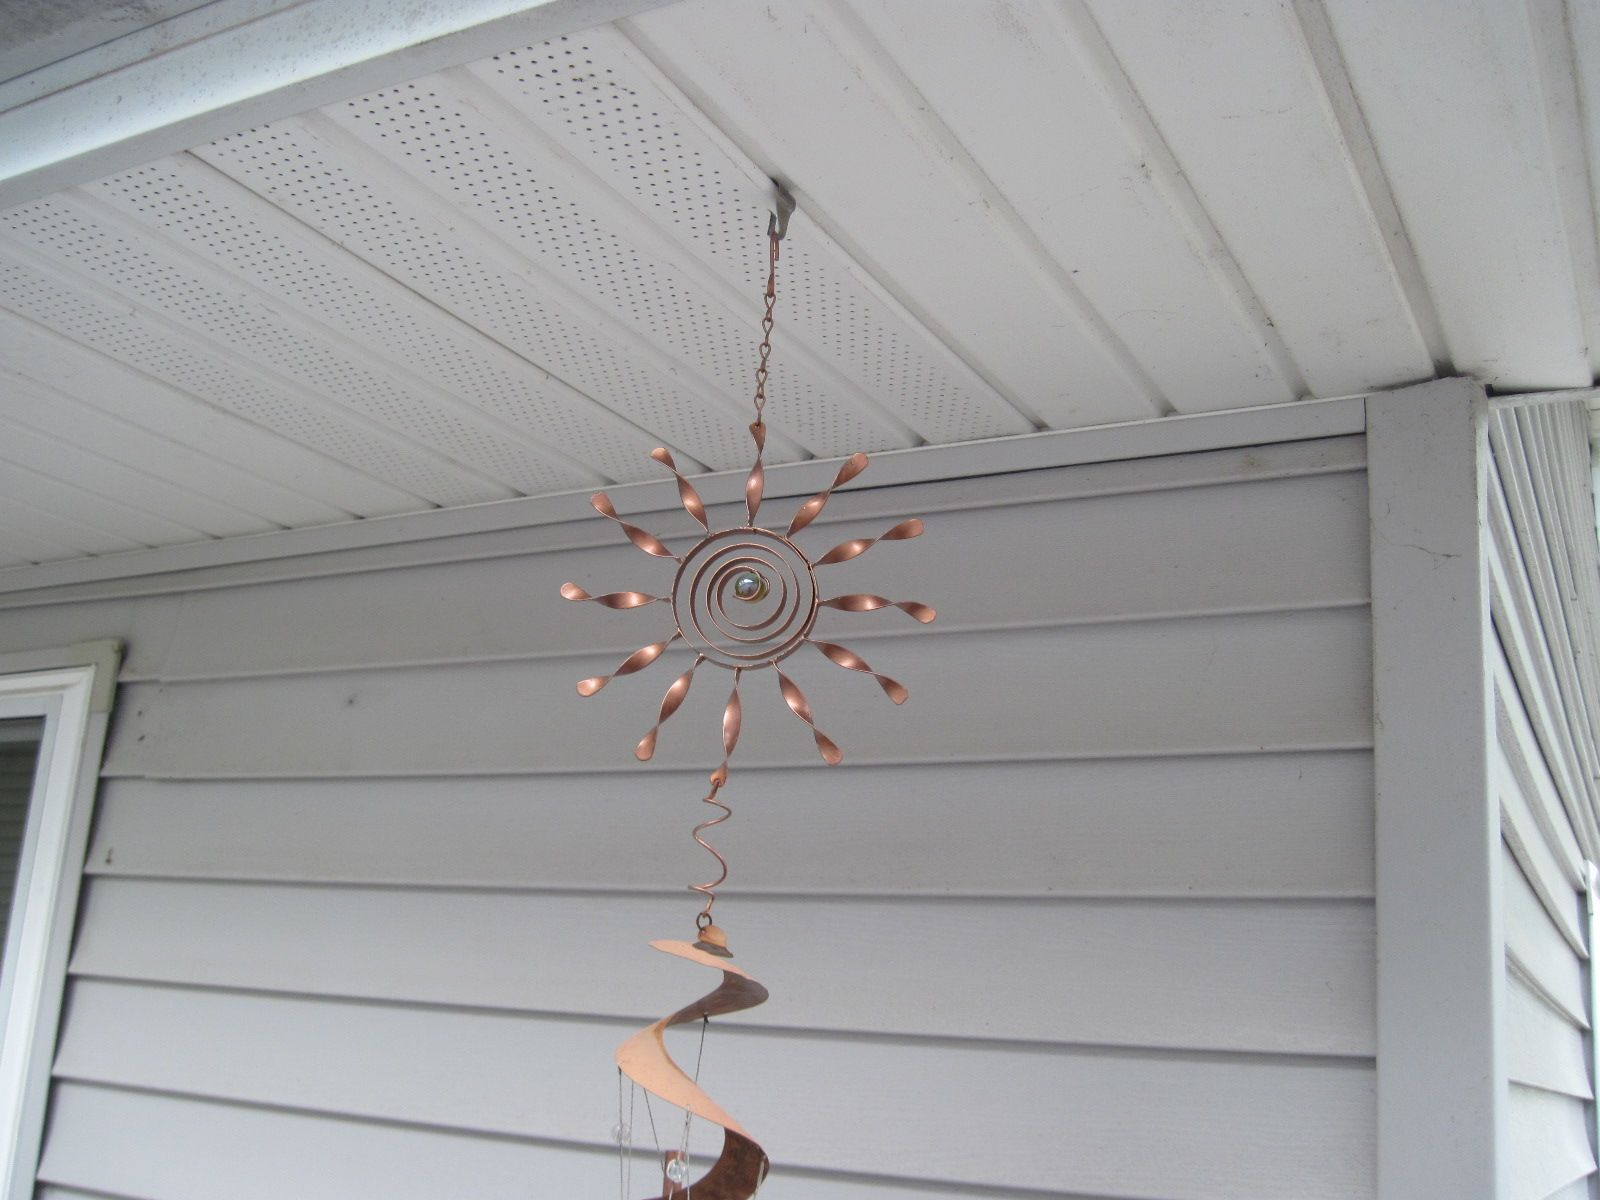 hang wind chime from soffit for our home pinterest wind hang wind chime from soffit